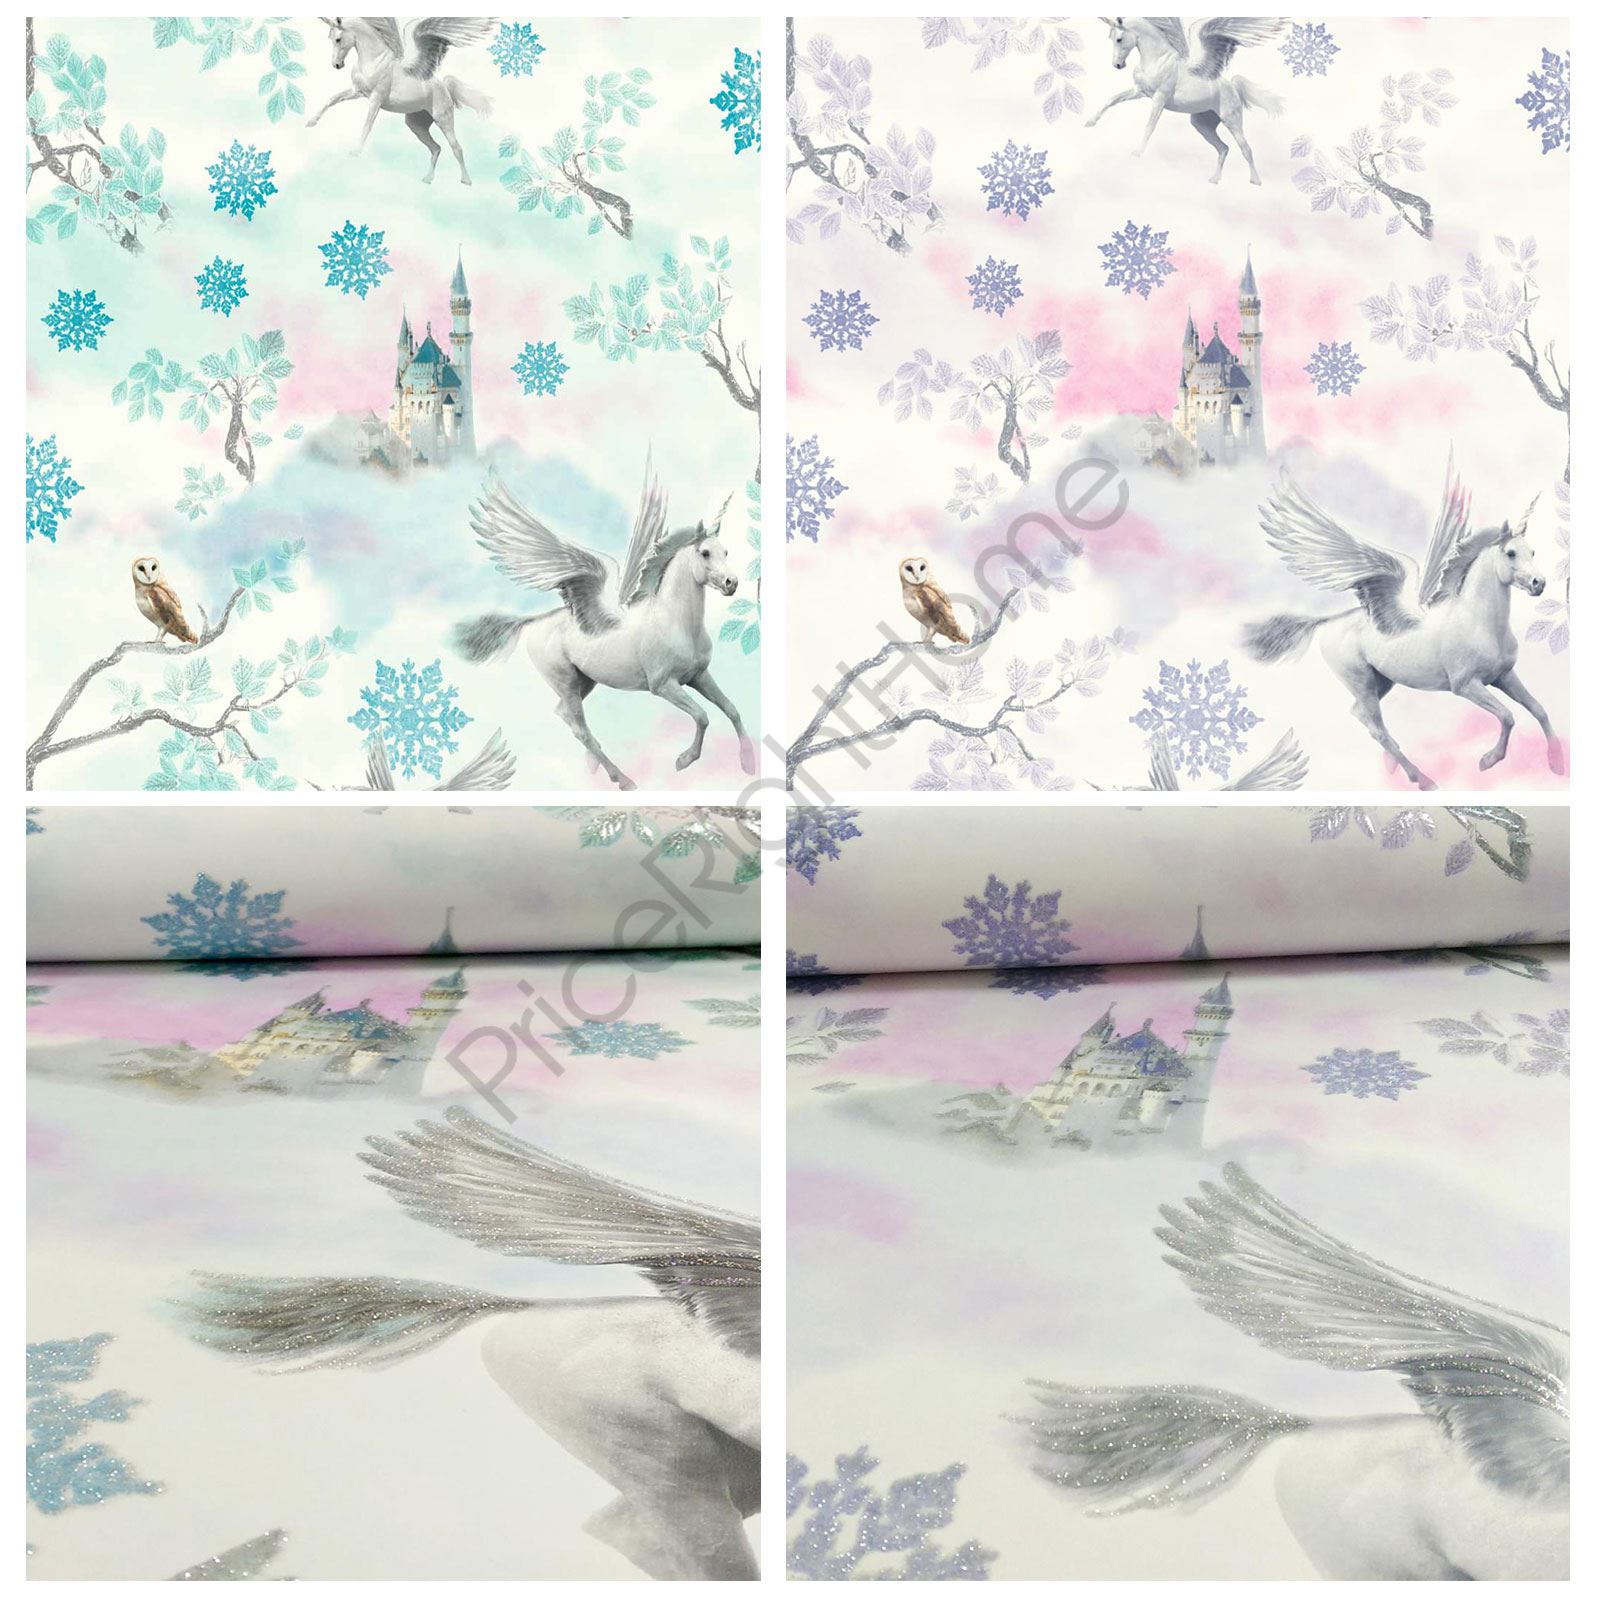 Sleigh Bedroom Sets King Bedroom Jpg Simple Bedroom Colour Design Bedroom Accessories Uk: ARTHOUSE FAIRYTALE UNICORN WALLPAPER